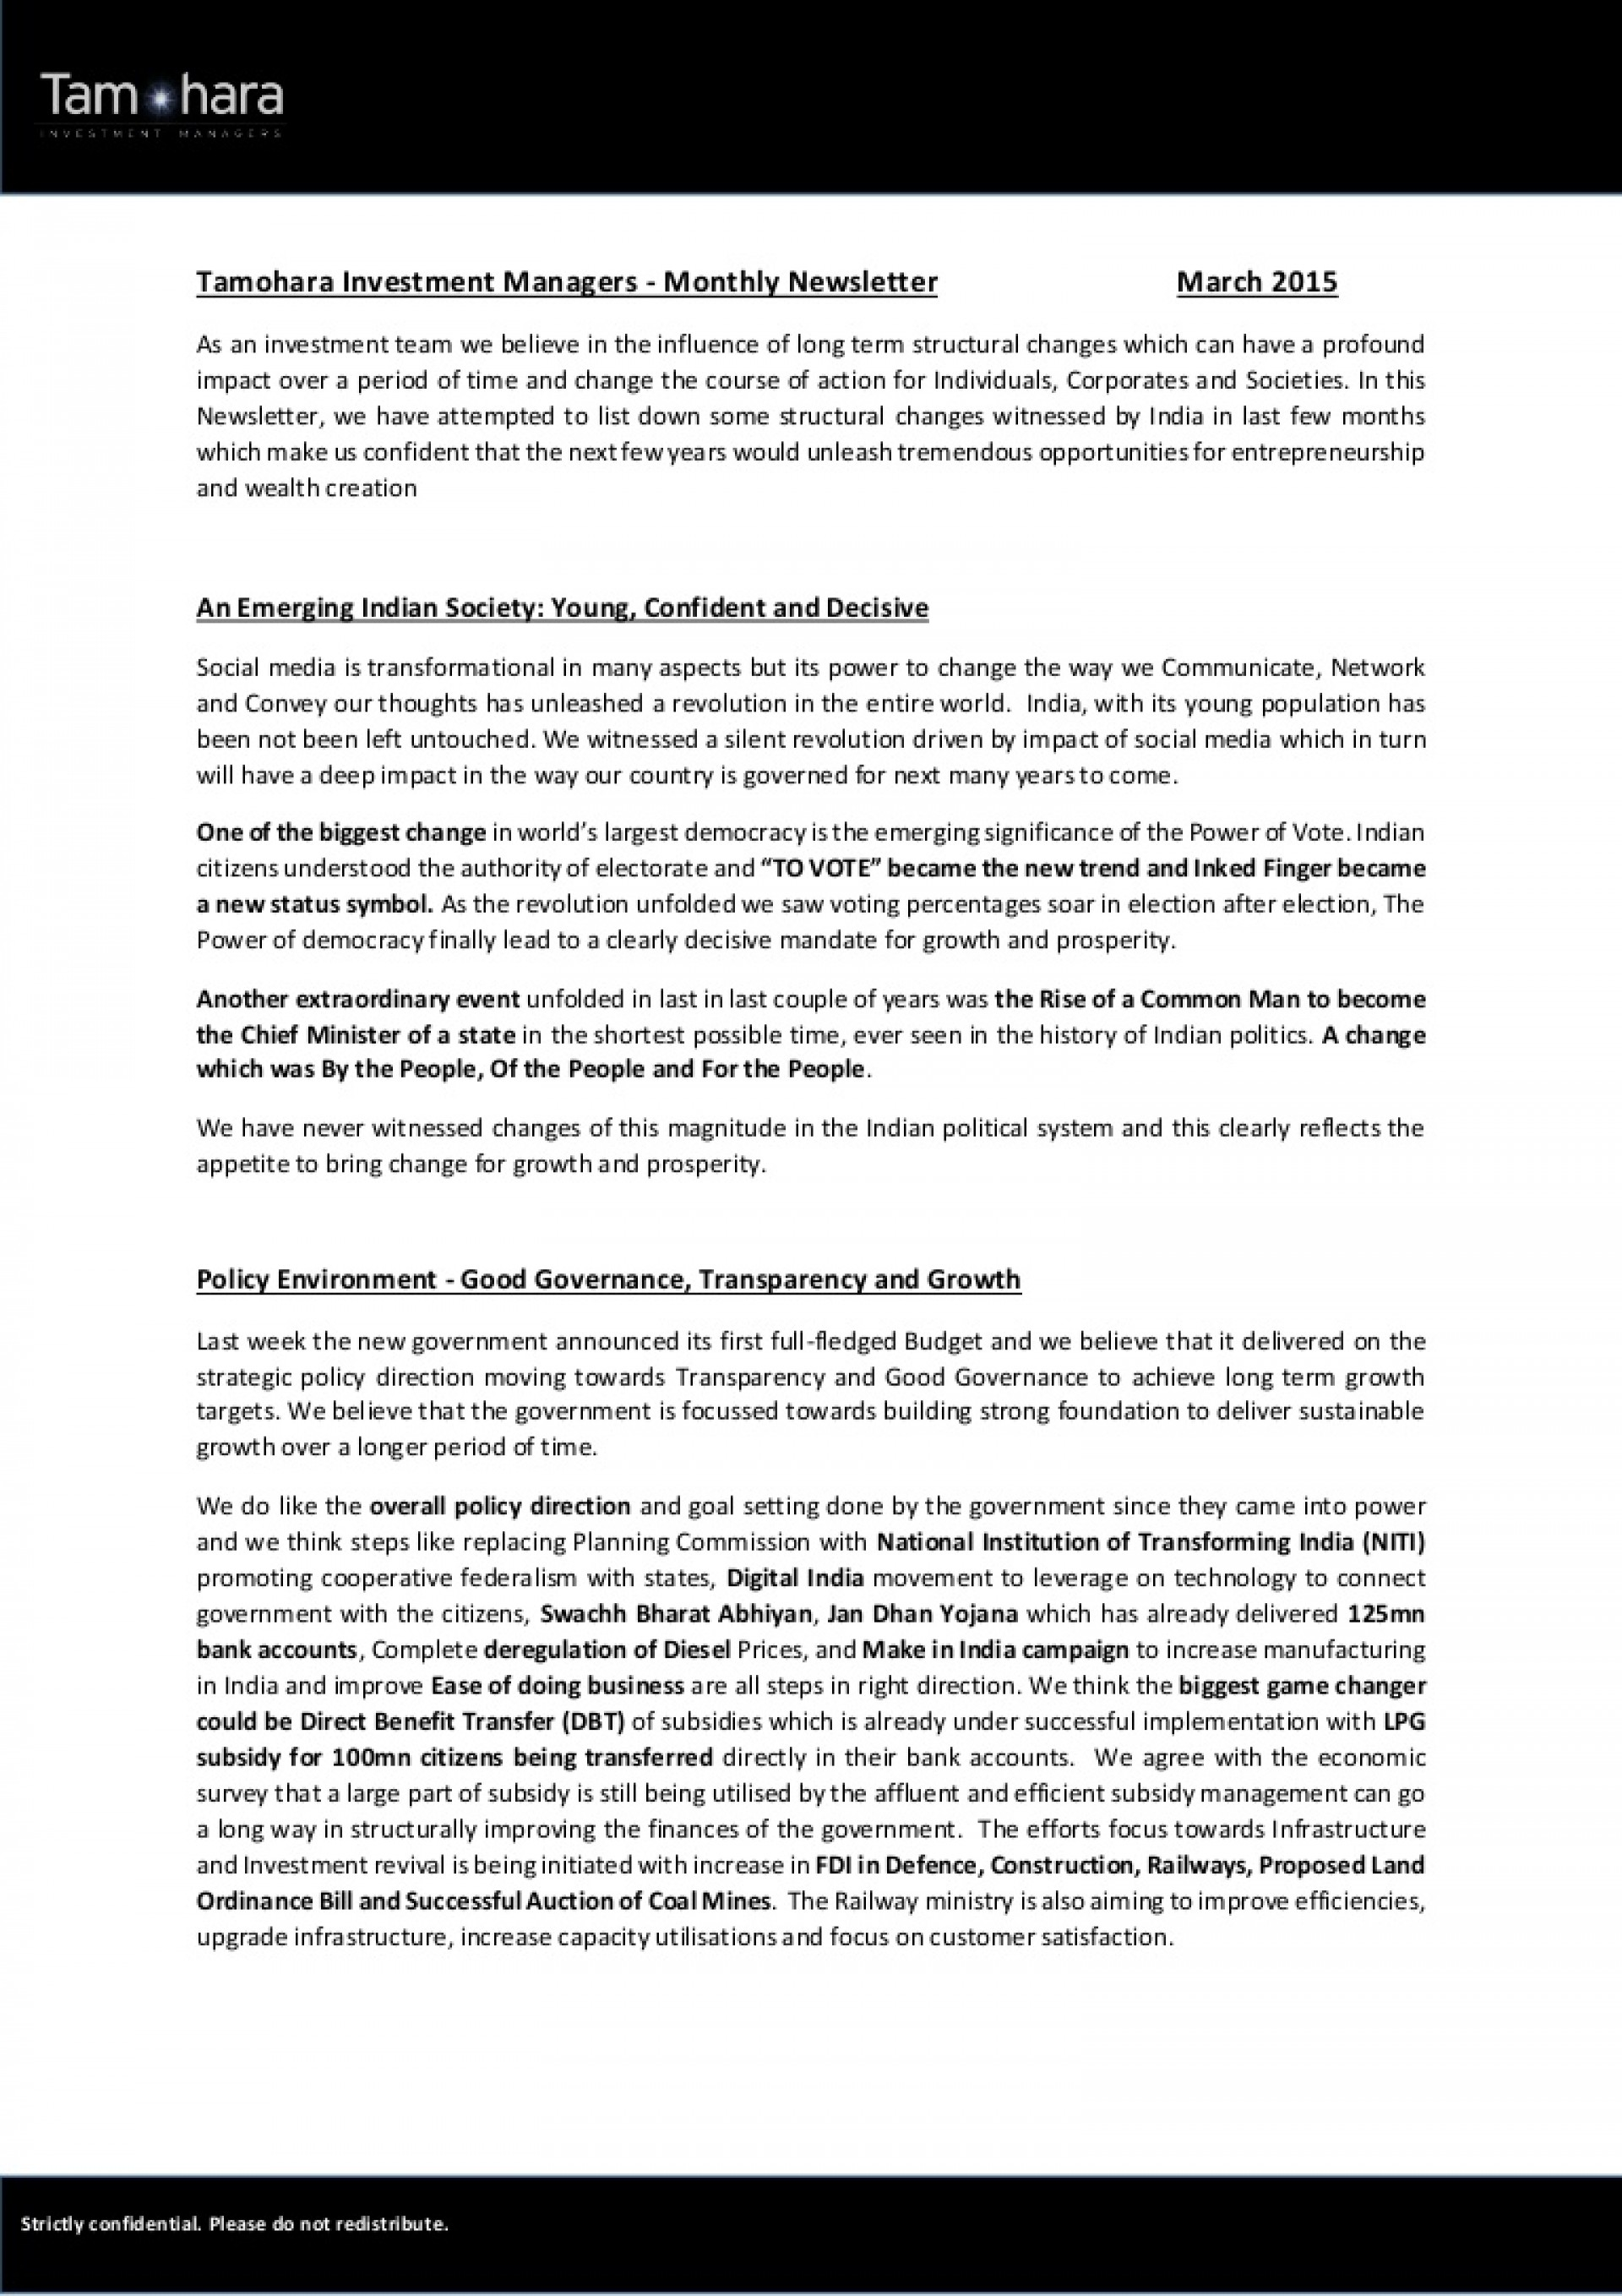 013 Essay Example Tamoharainvestmentnewsletter Mar2015 Conversion Gate01 Thumbnail How To Make Outstanding A Longer Paper With Periods Words Seem 1920